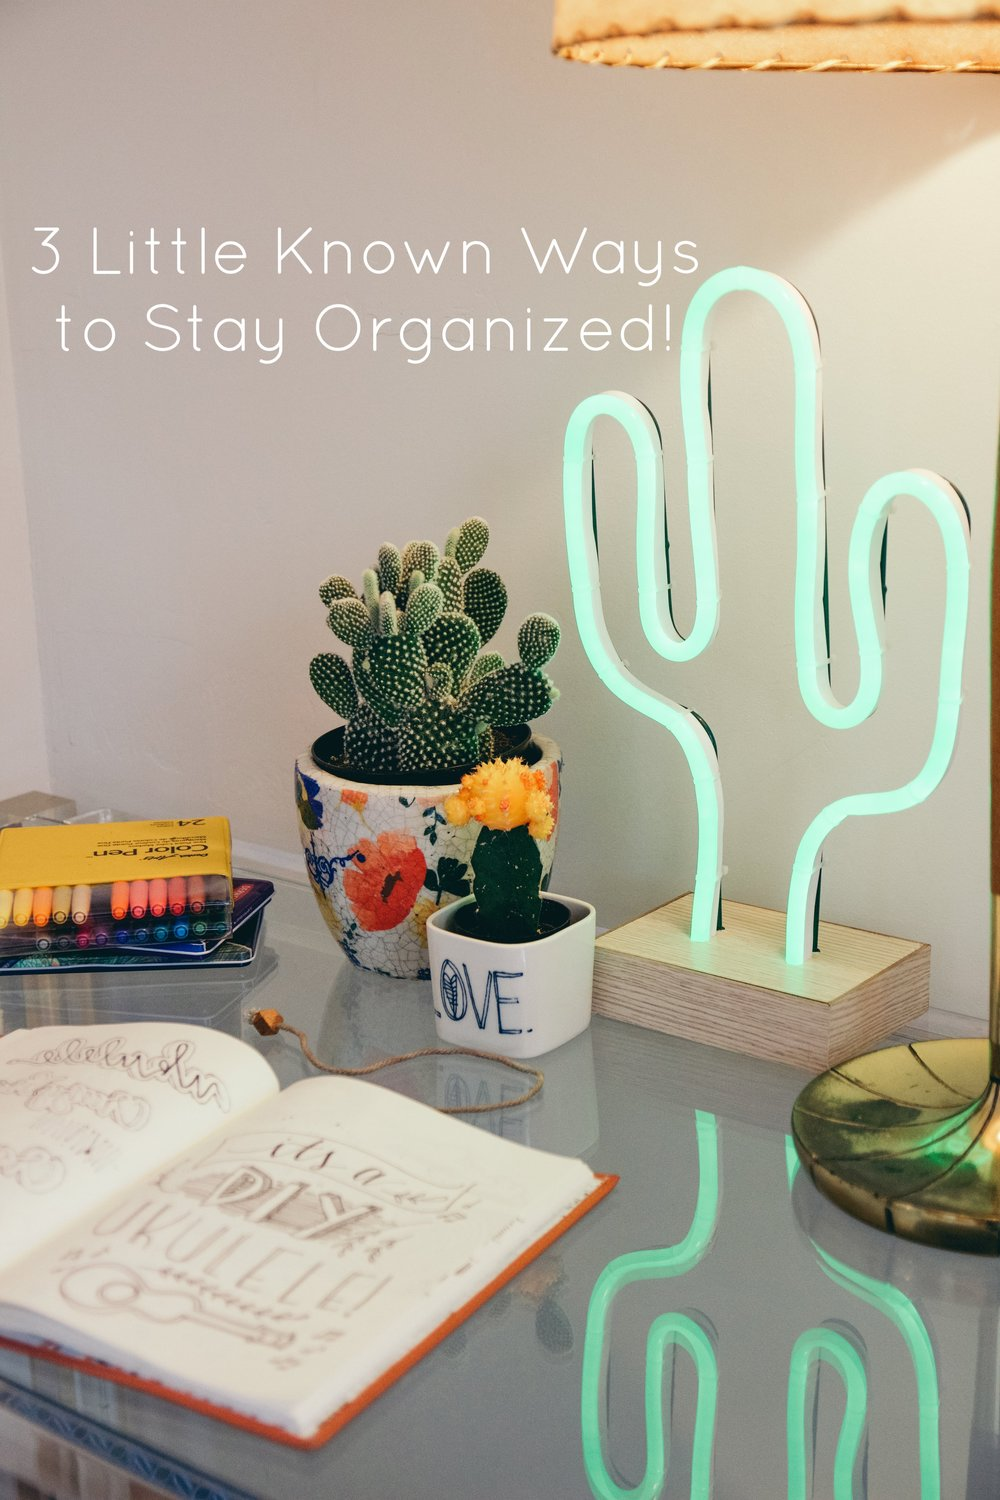 3 Little Known Ways to Stay Organized Finding sanity along the way for your life + home.